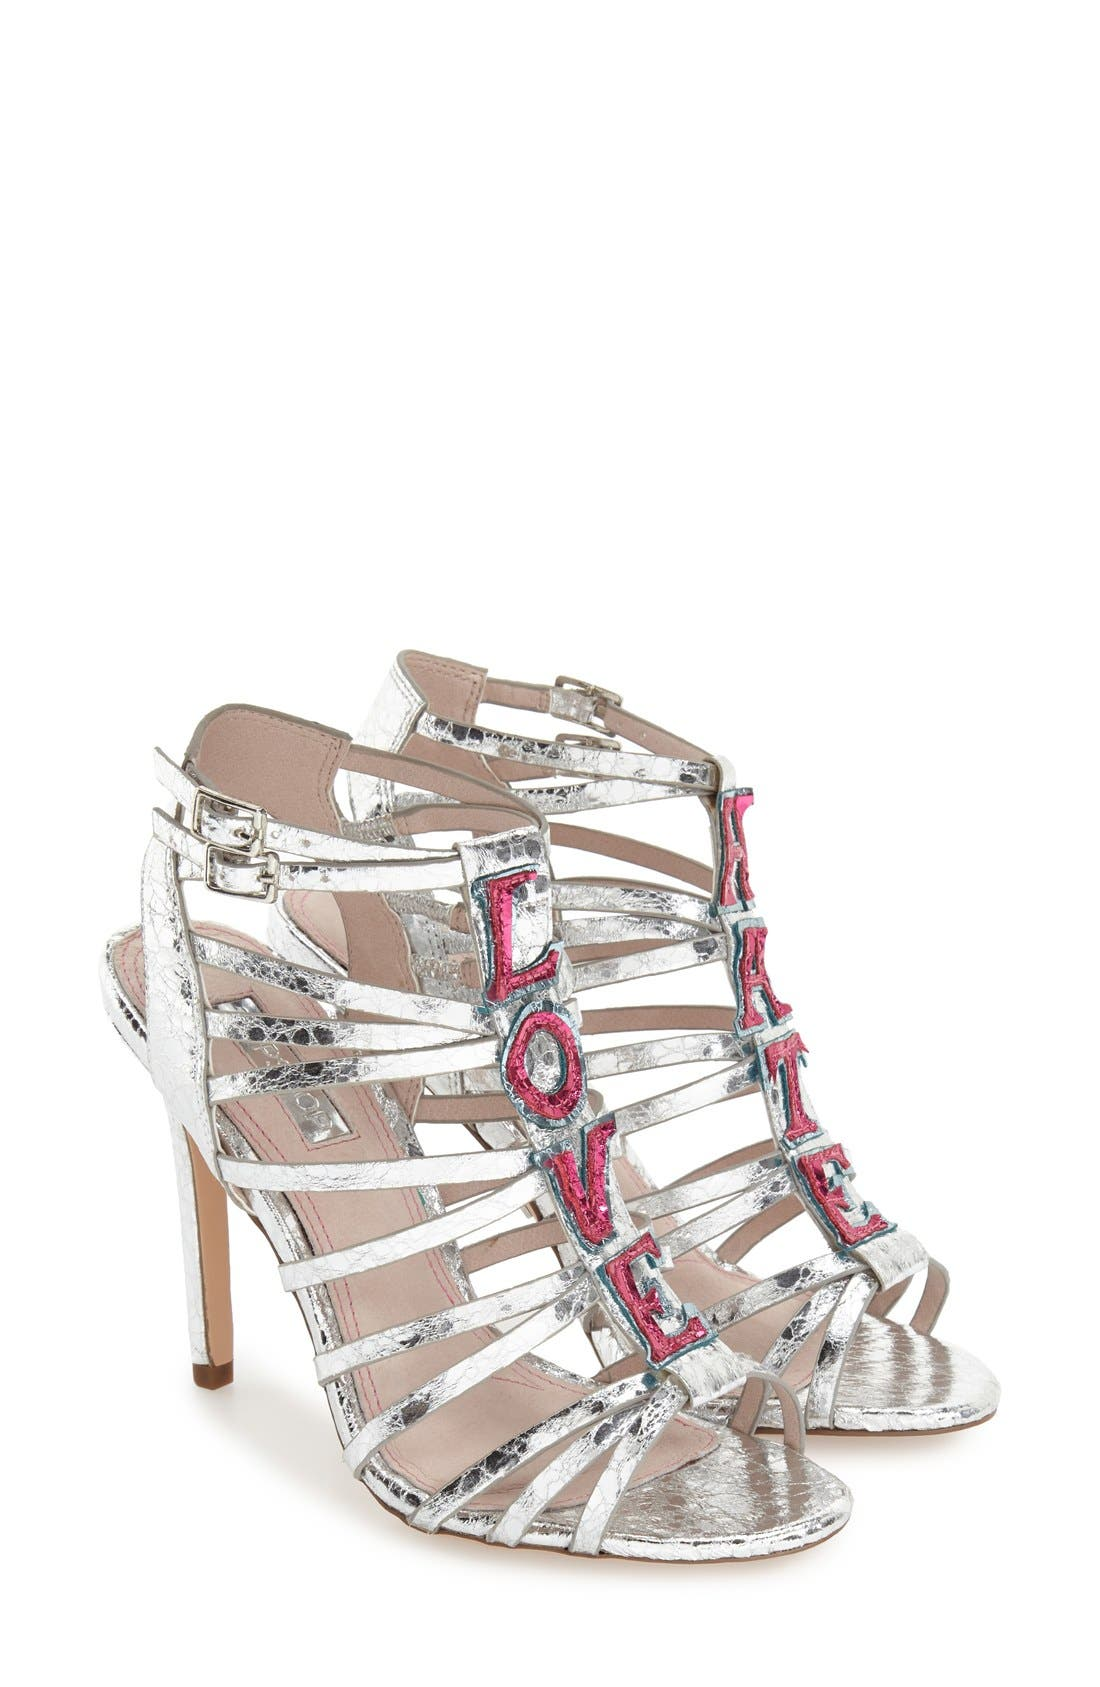 'React - Love/Hate' Sandal,                         Main,                         color, Silver Multi